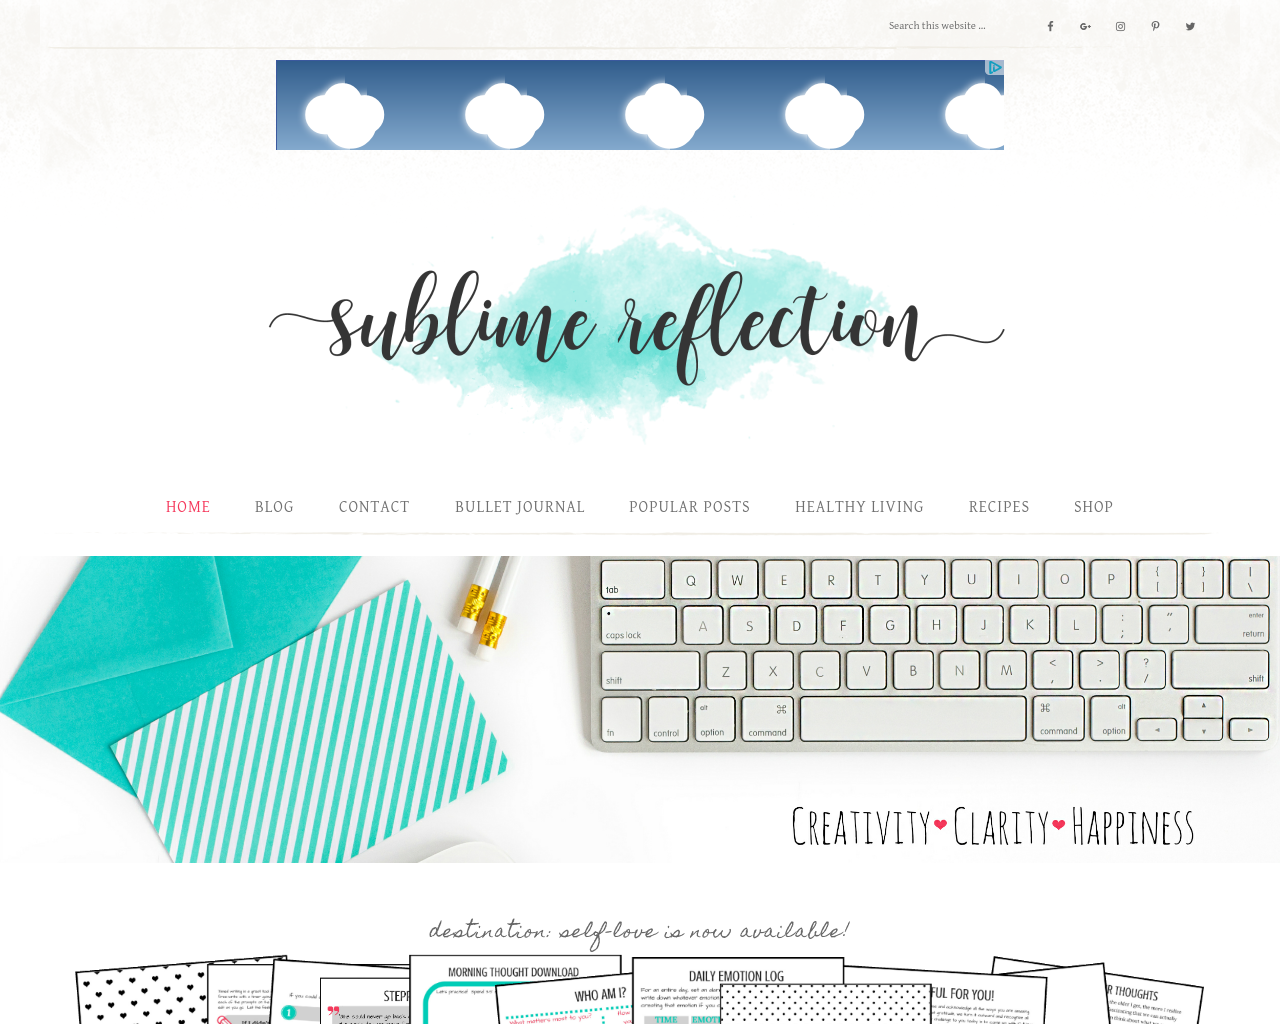 Sublime-Reflection-Advertising-Reviews-Pricing